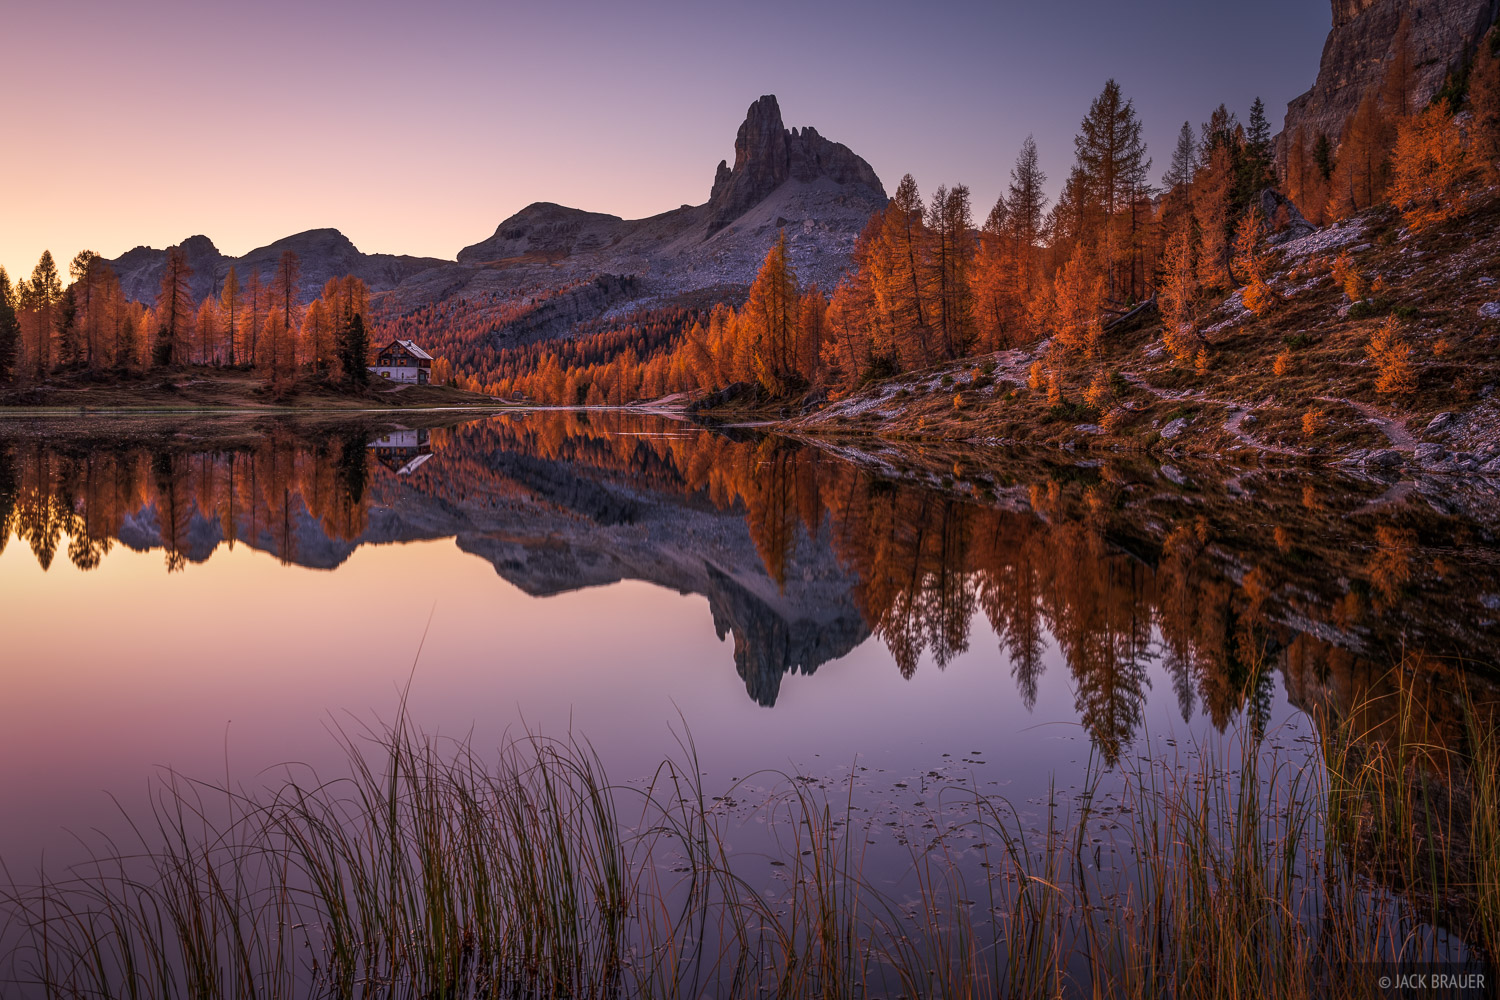 Becco di Mezzodi, Dolomites, Italy, Lago Federa, larch, October, reflection, Alps, photo